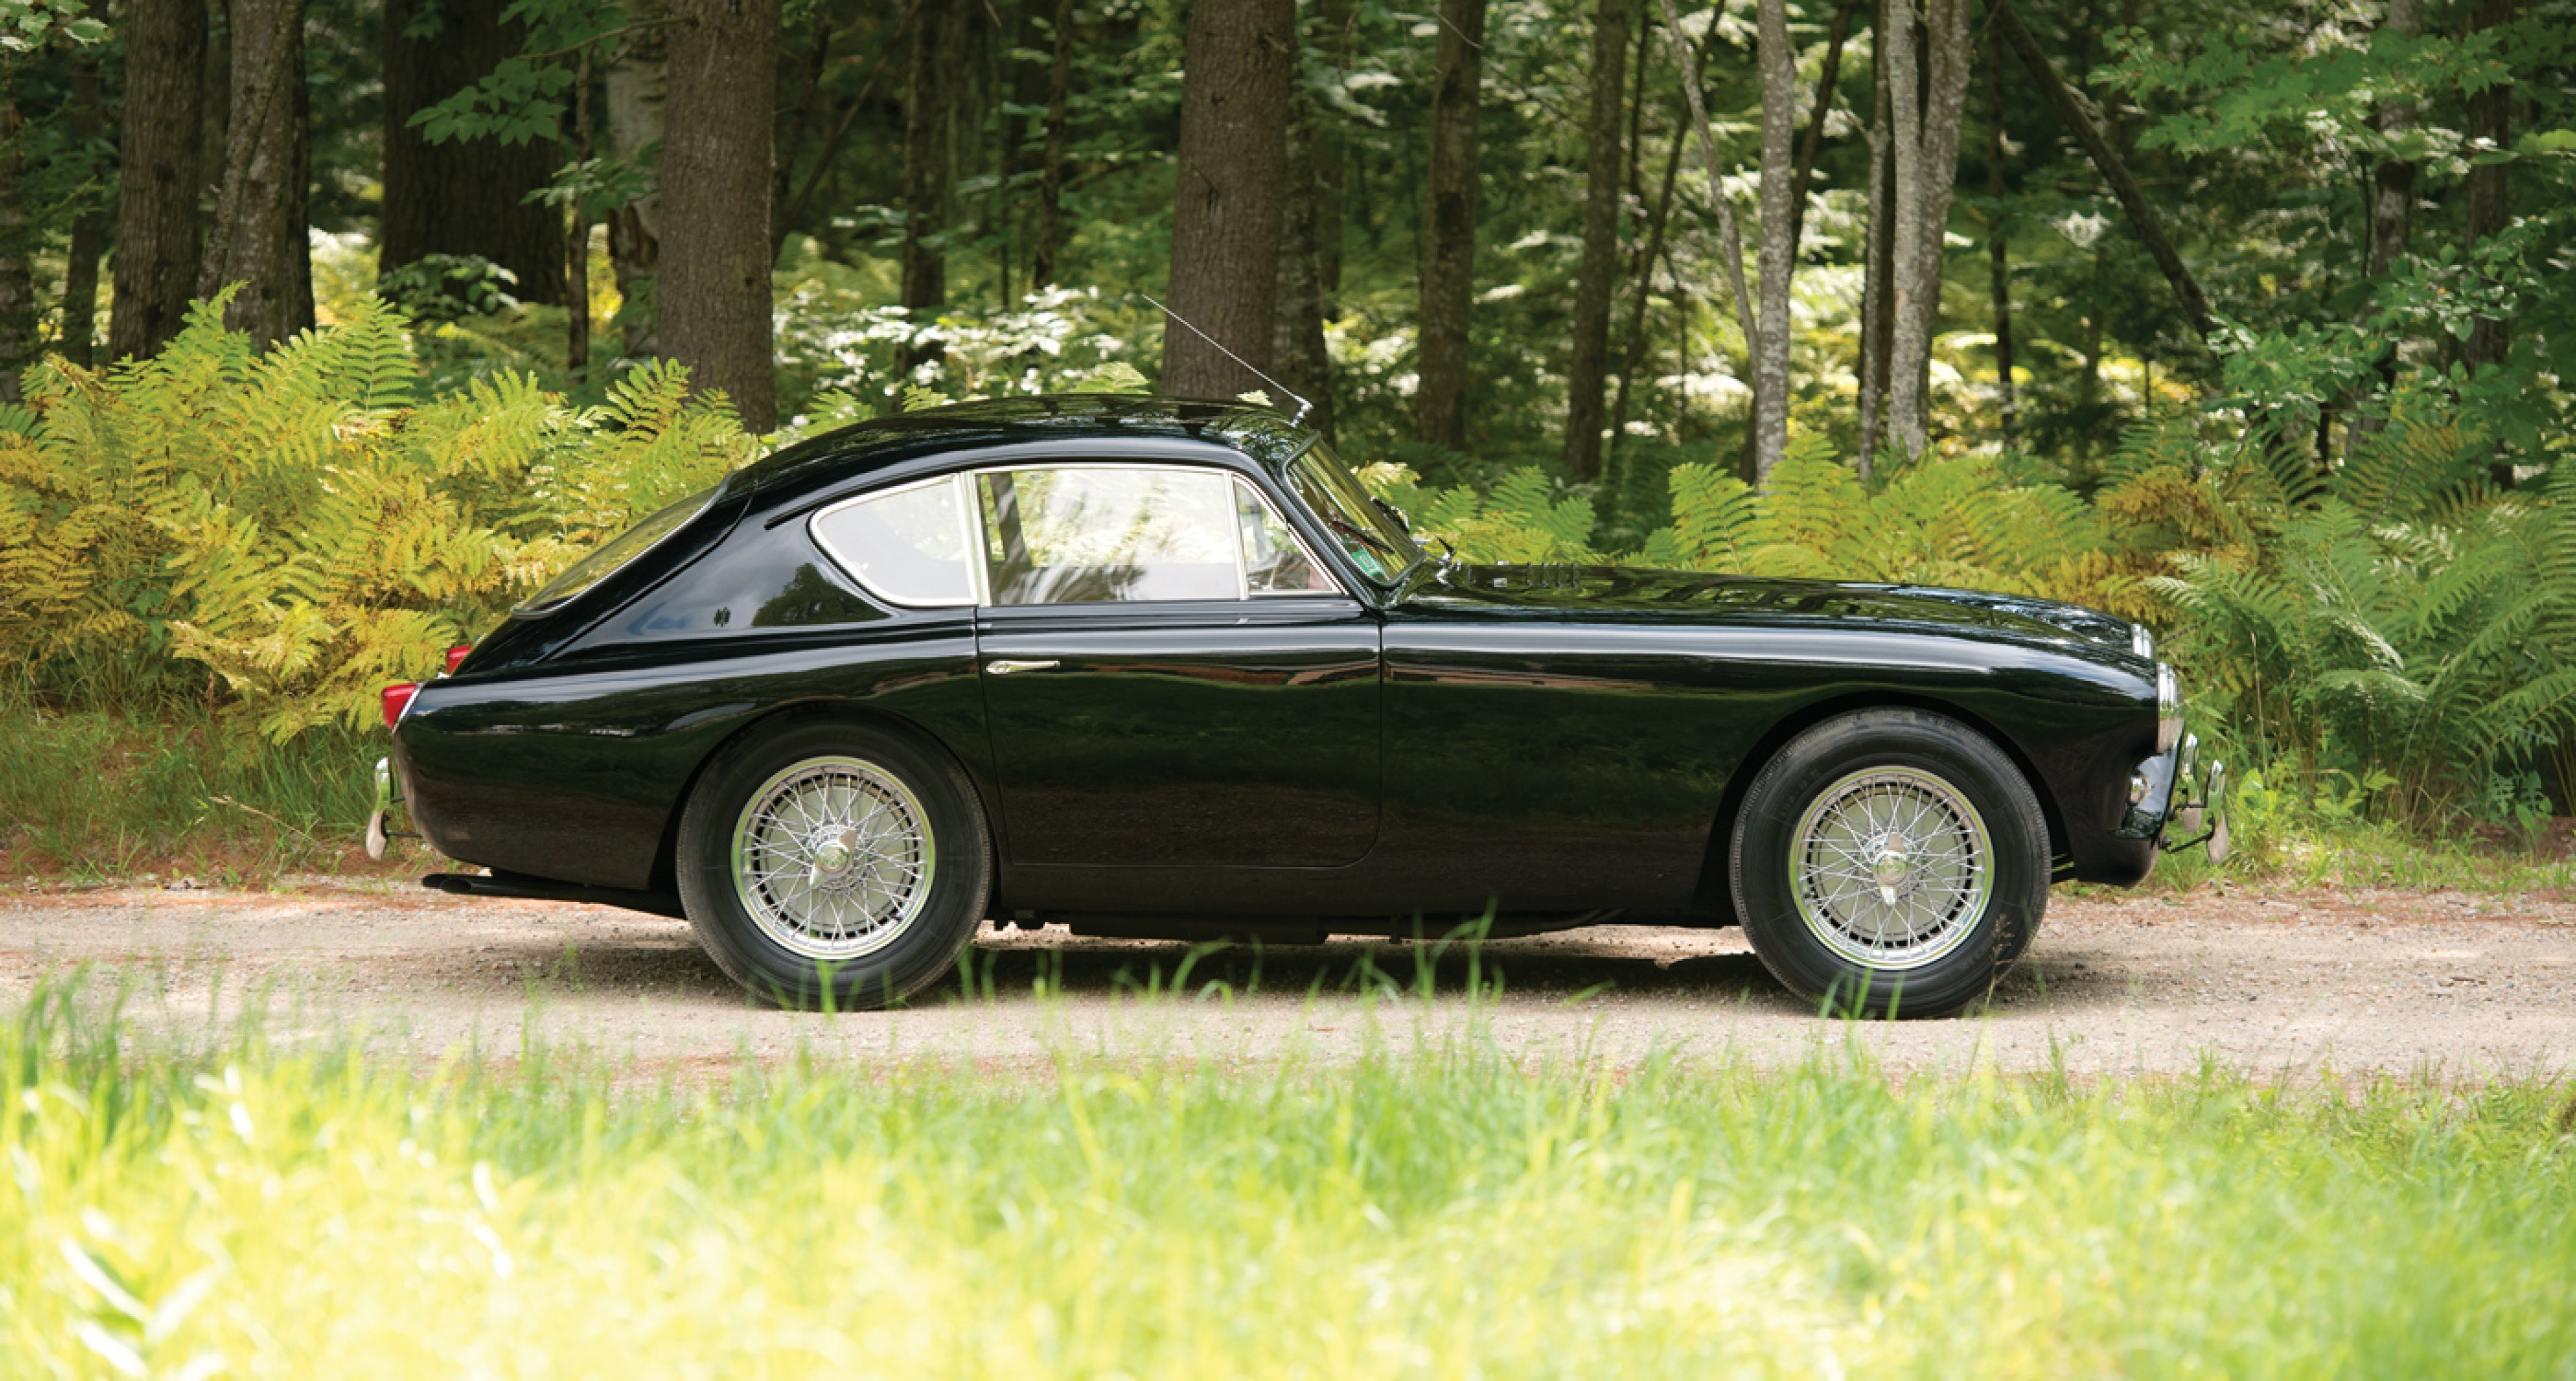 Lot 139: 1958 AC Aceca-Bristol ($175,000 - $250,000 ) to be offered at RM Auctions Hershey 9 - 10 October 2014